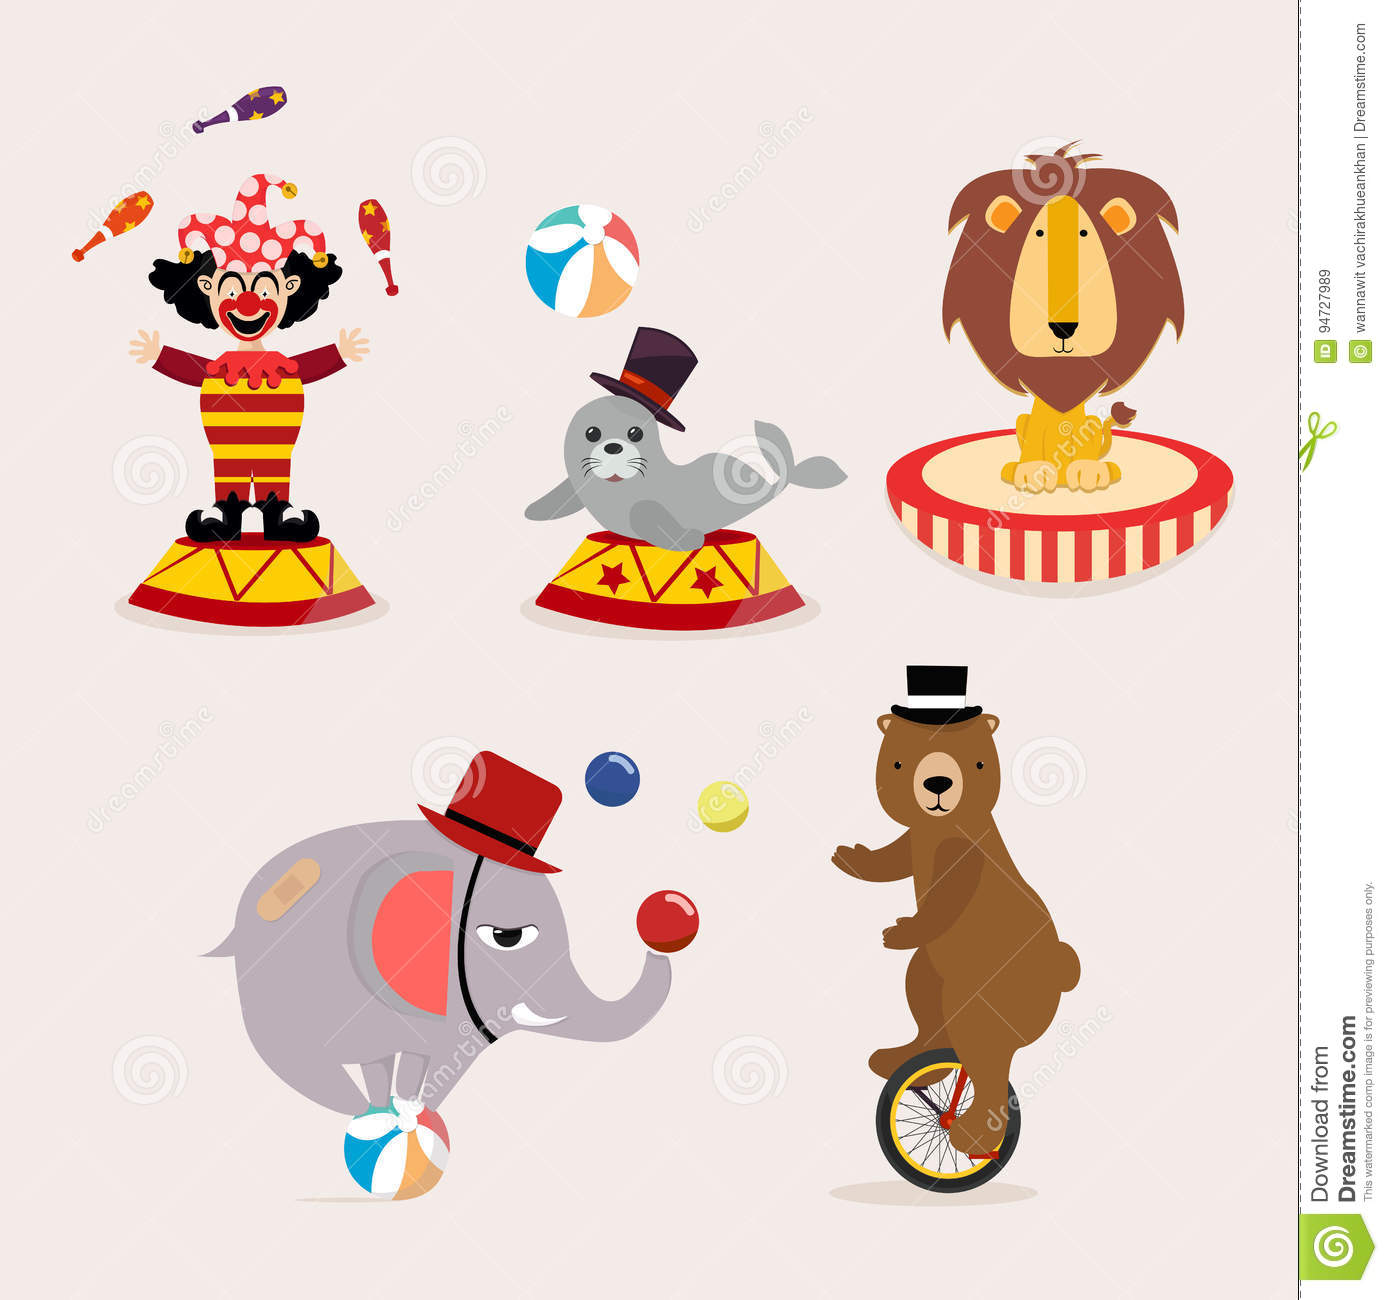 Cute Circus Character Collection Stock Vector Illustration Of